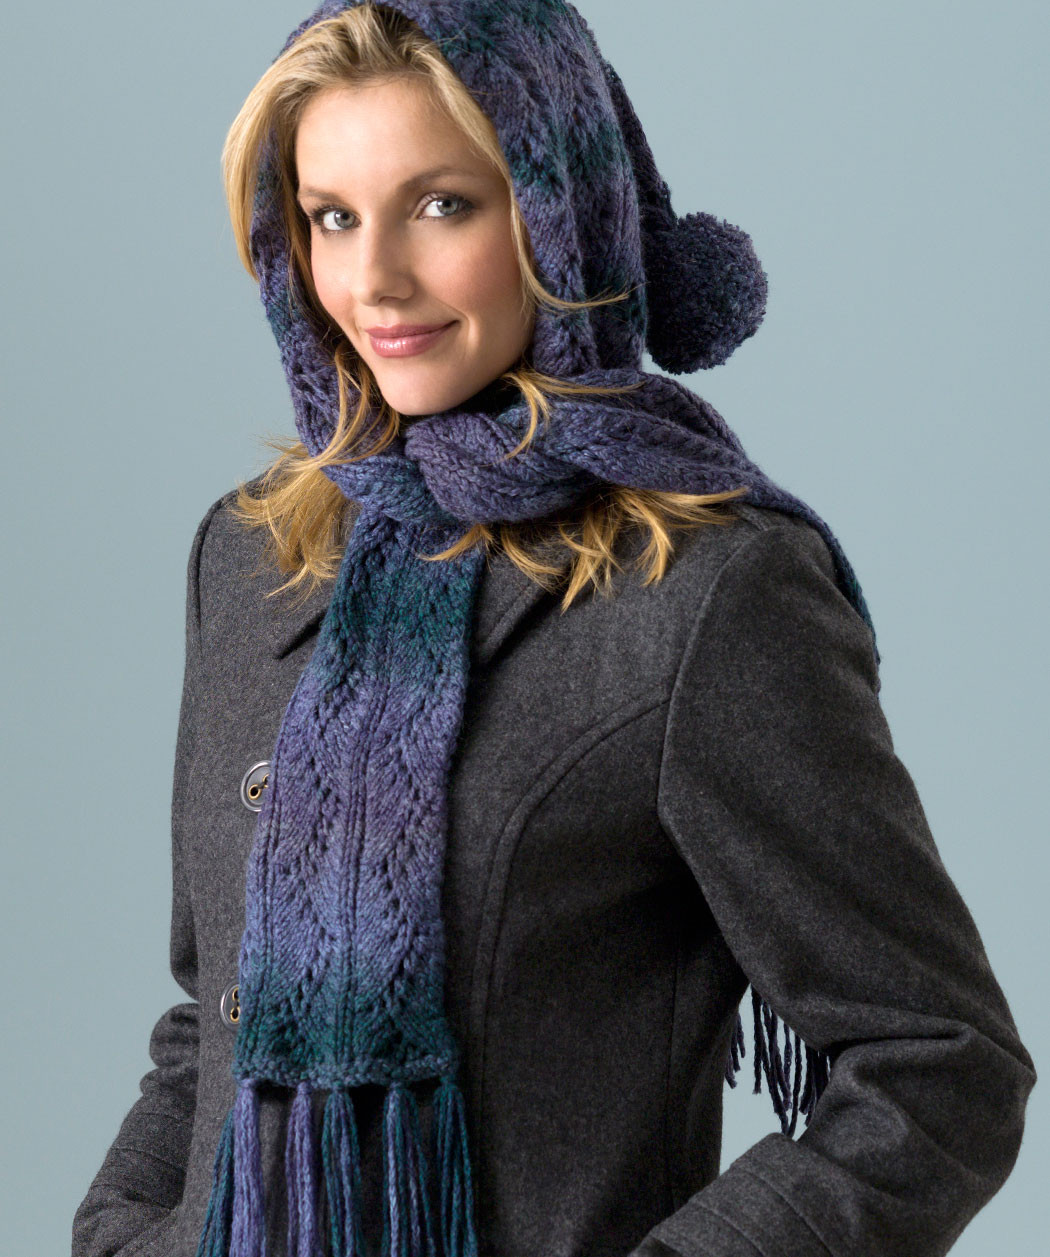 Awesome Hooded Scarf Knitting Pattern Lacy Scarf Knitting Pattern Of Superb 46 Models Lacy Scarf Knitting Pattern